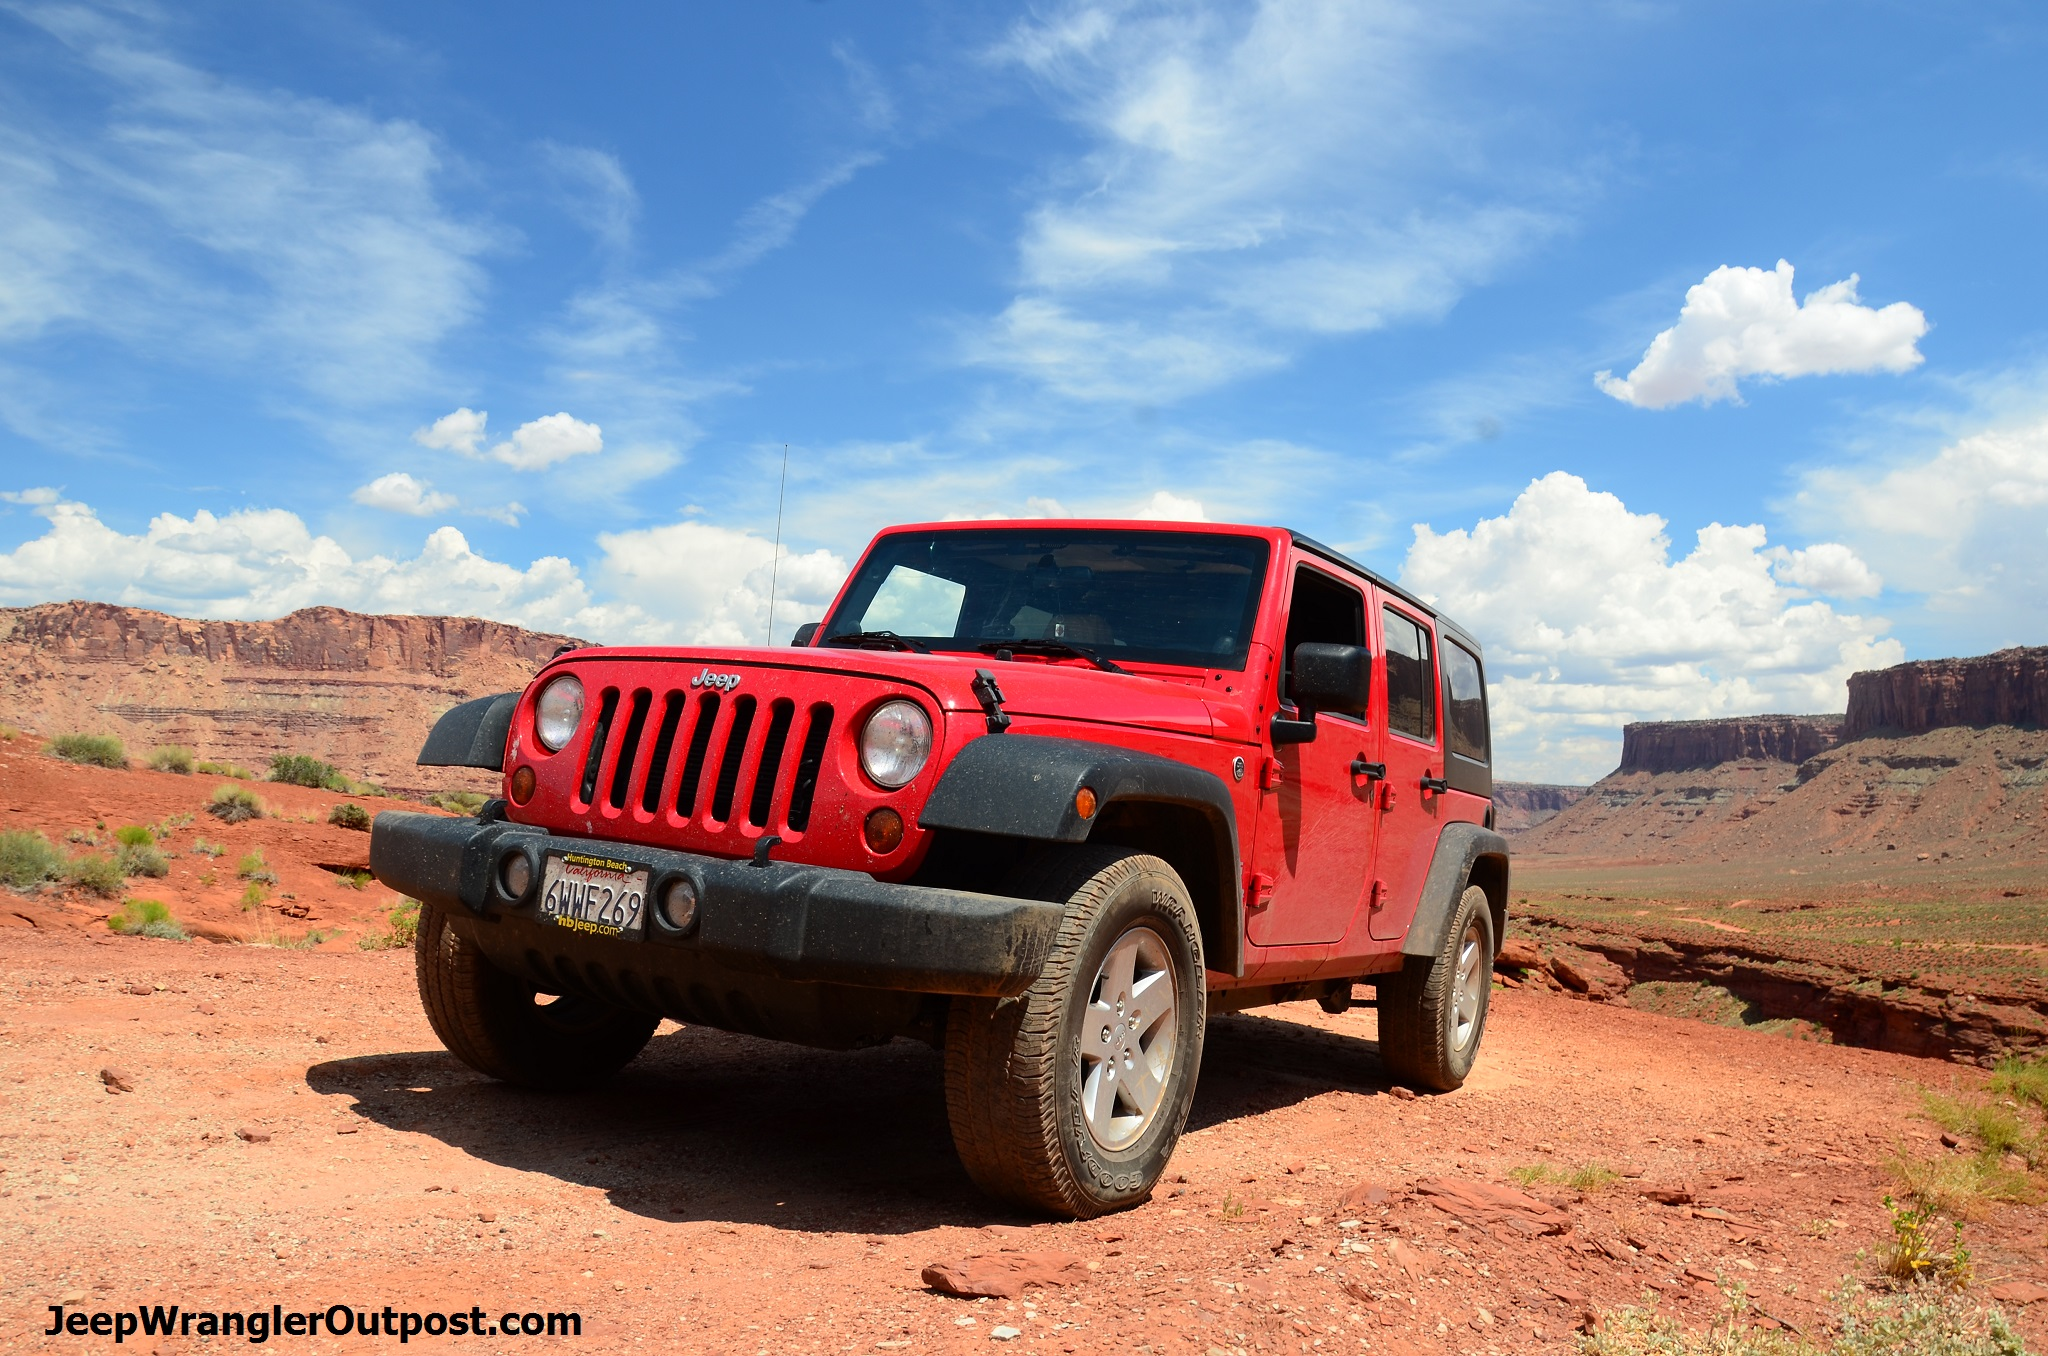 Moab Utah Car Rental Companies